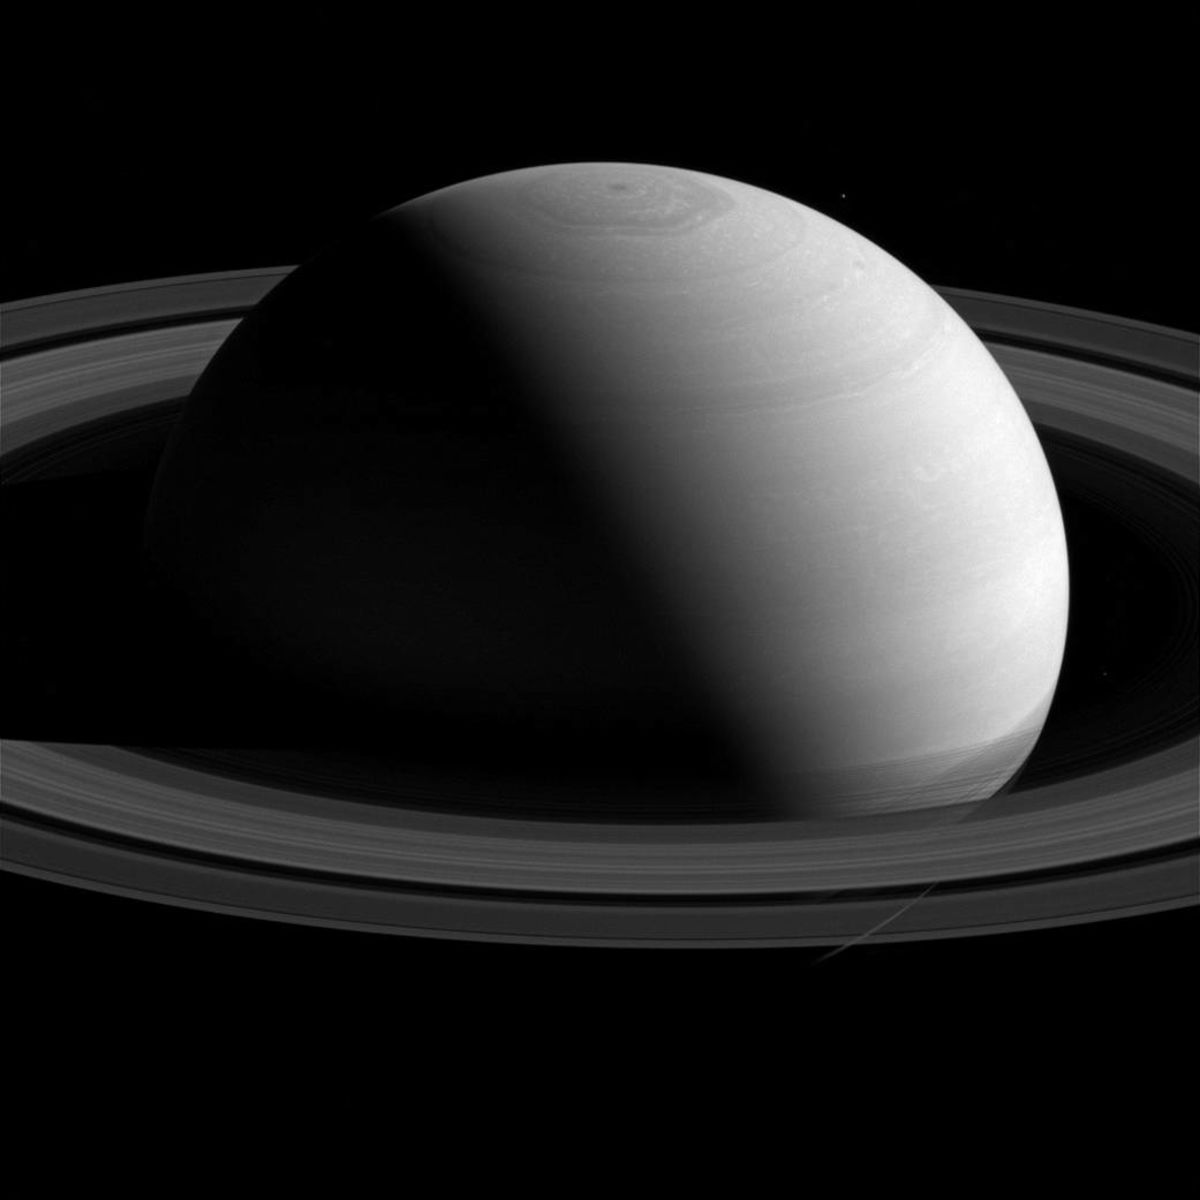 cassini_saturn_nasa.jpg